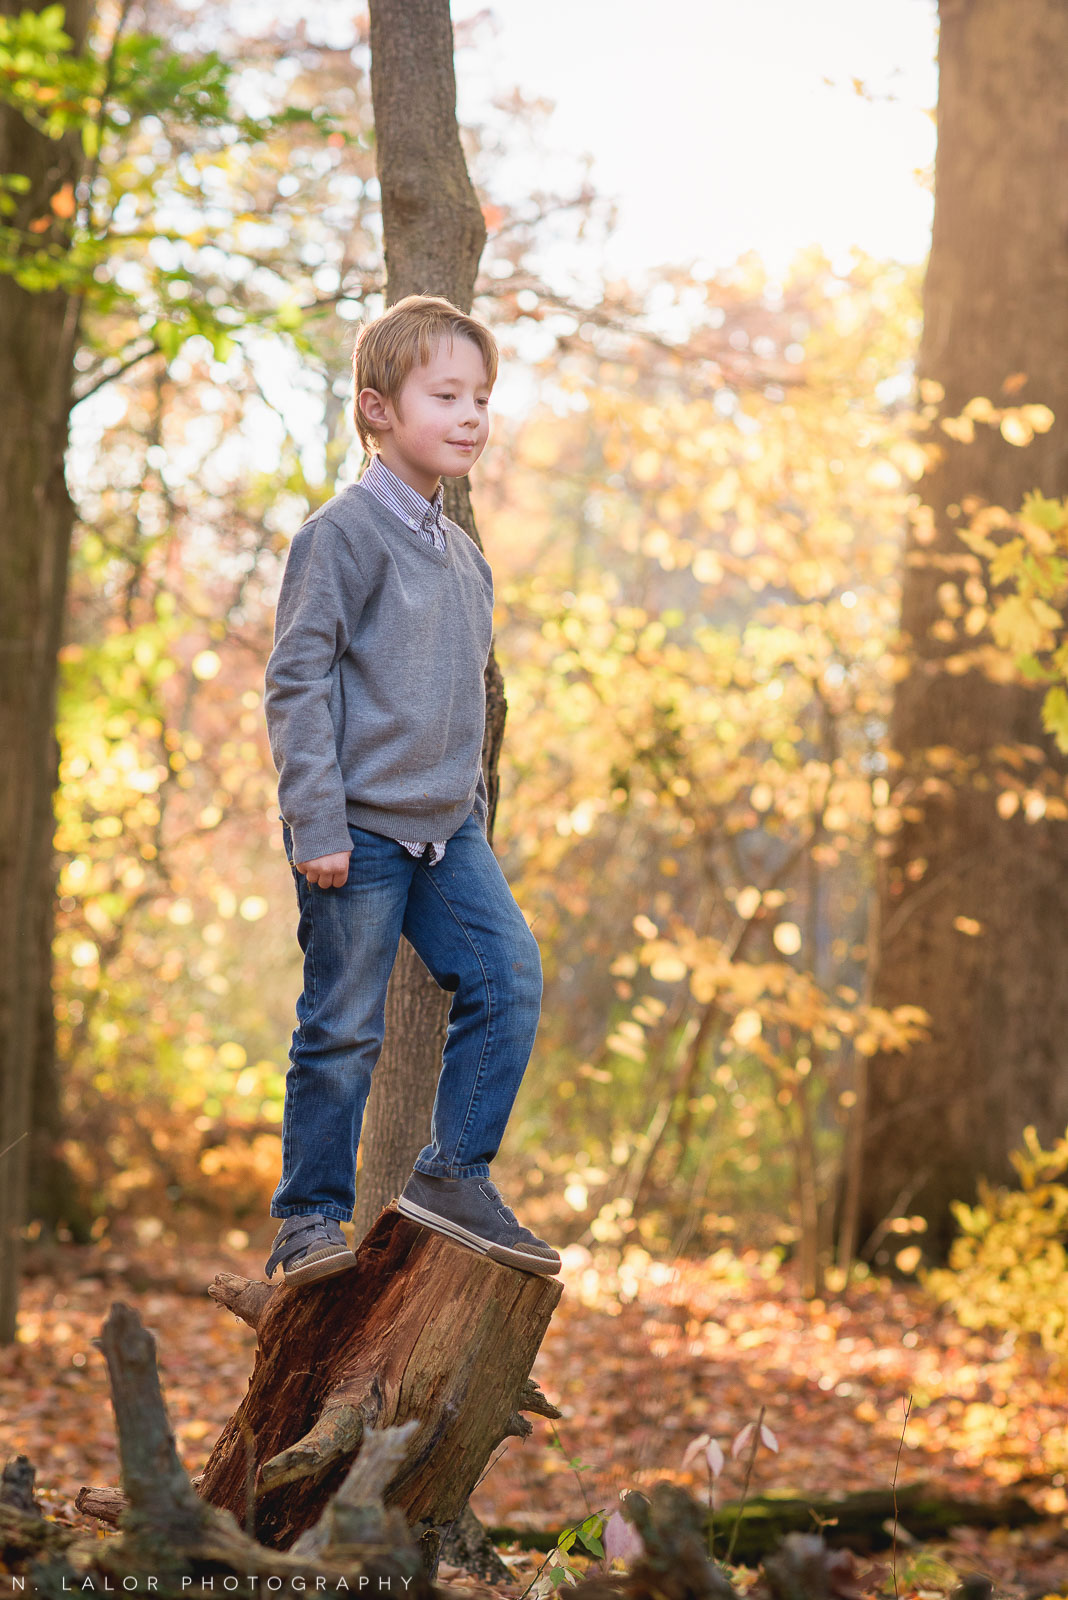 A boy exploring the woods. Lifestyle portrait by N. Lalor Photography. New Canaan Nature Center.